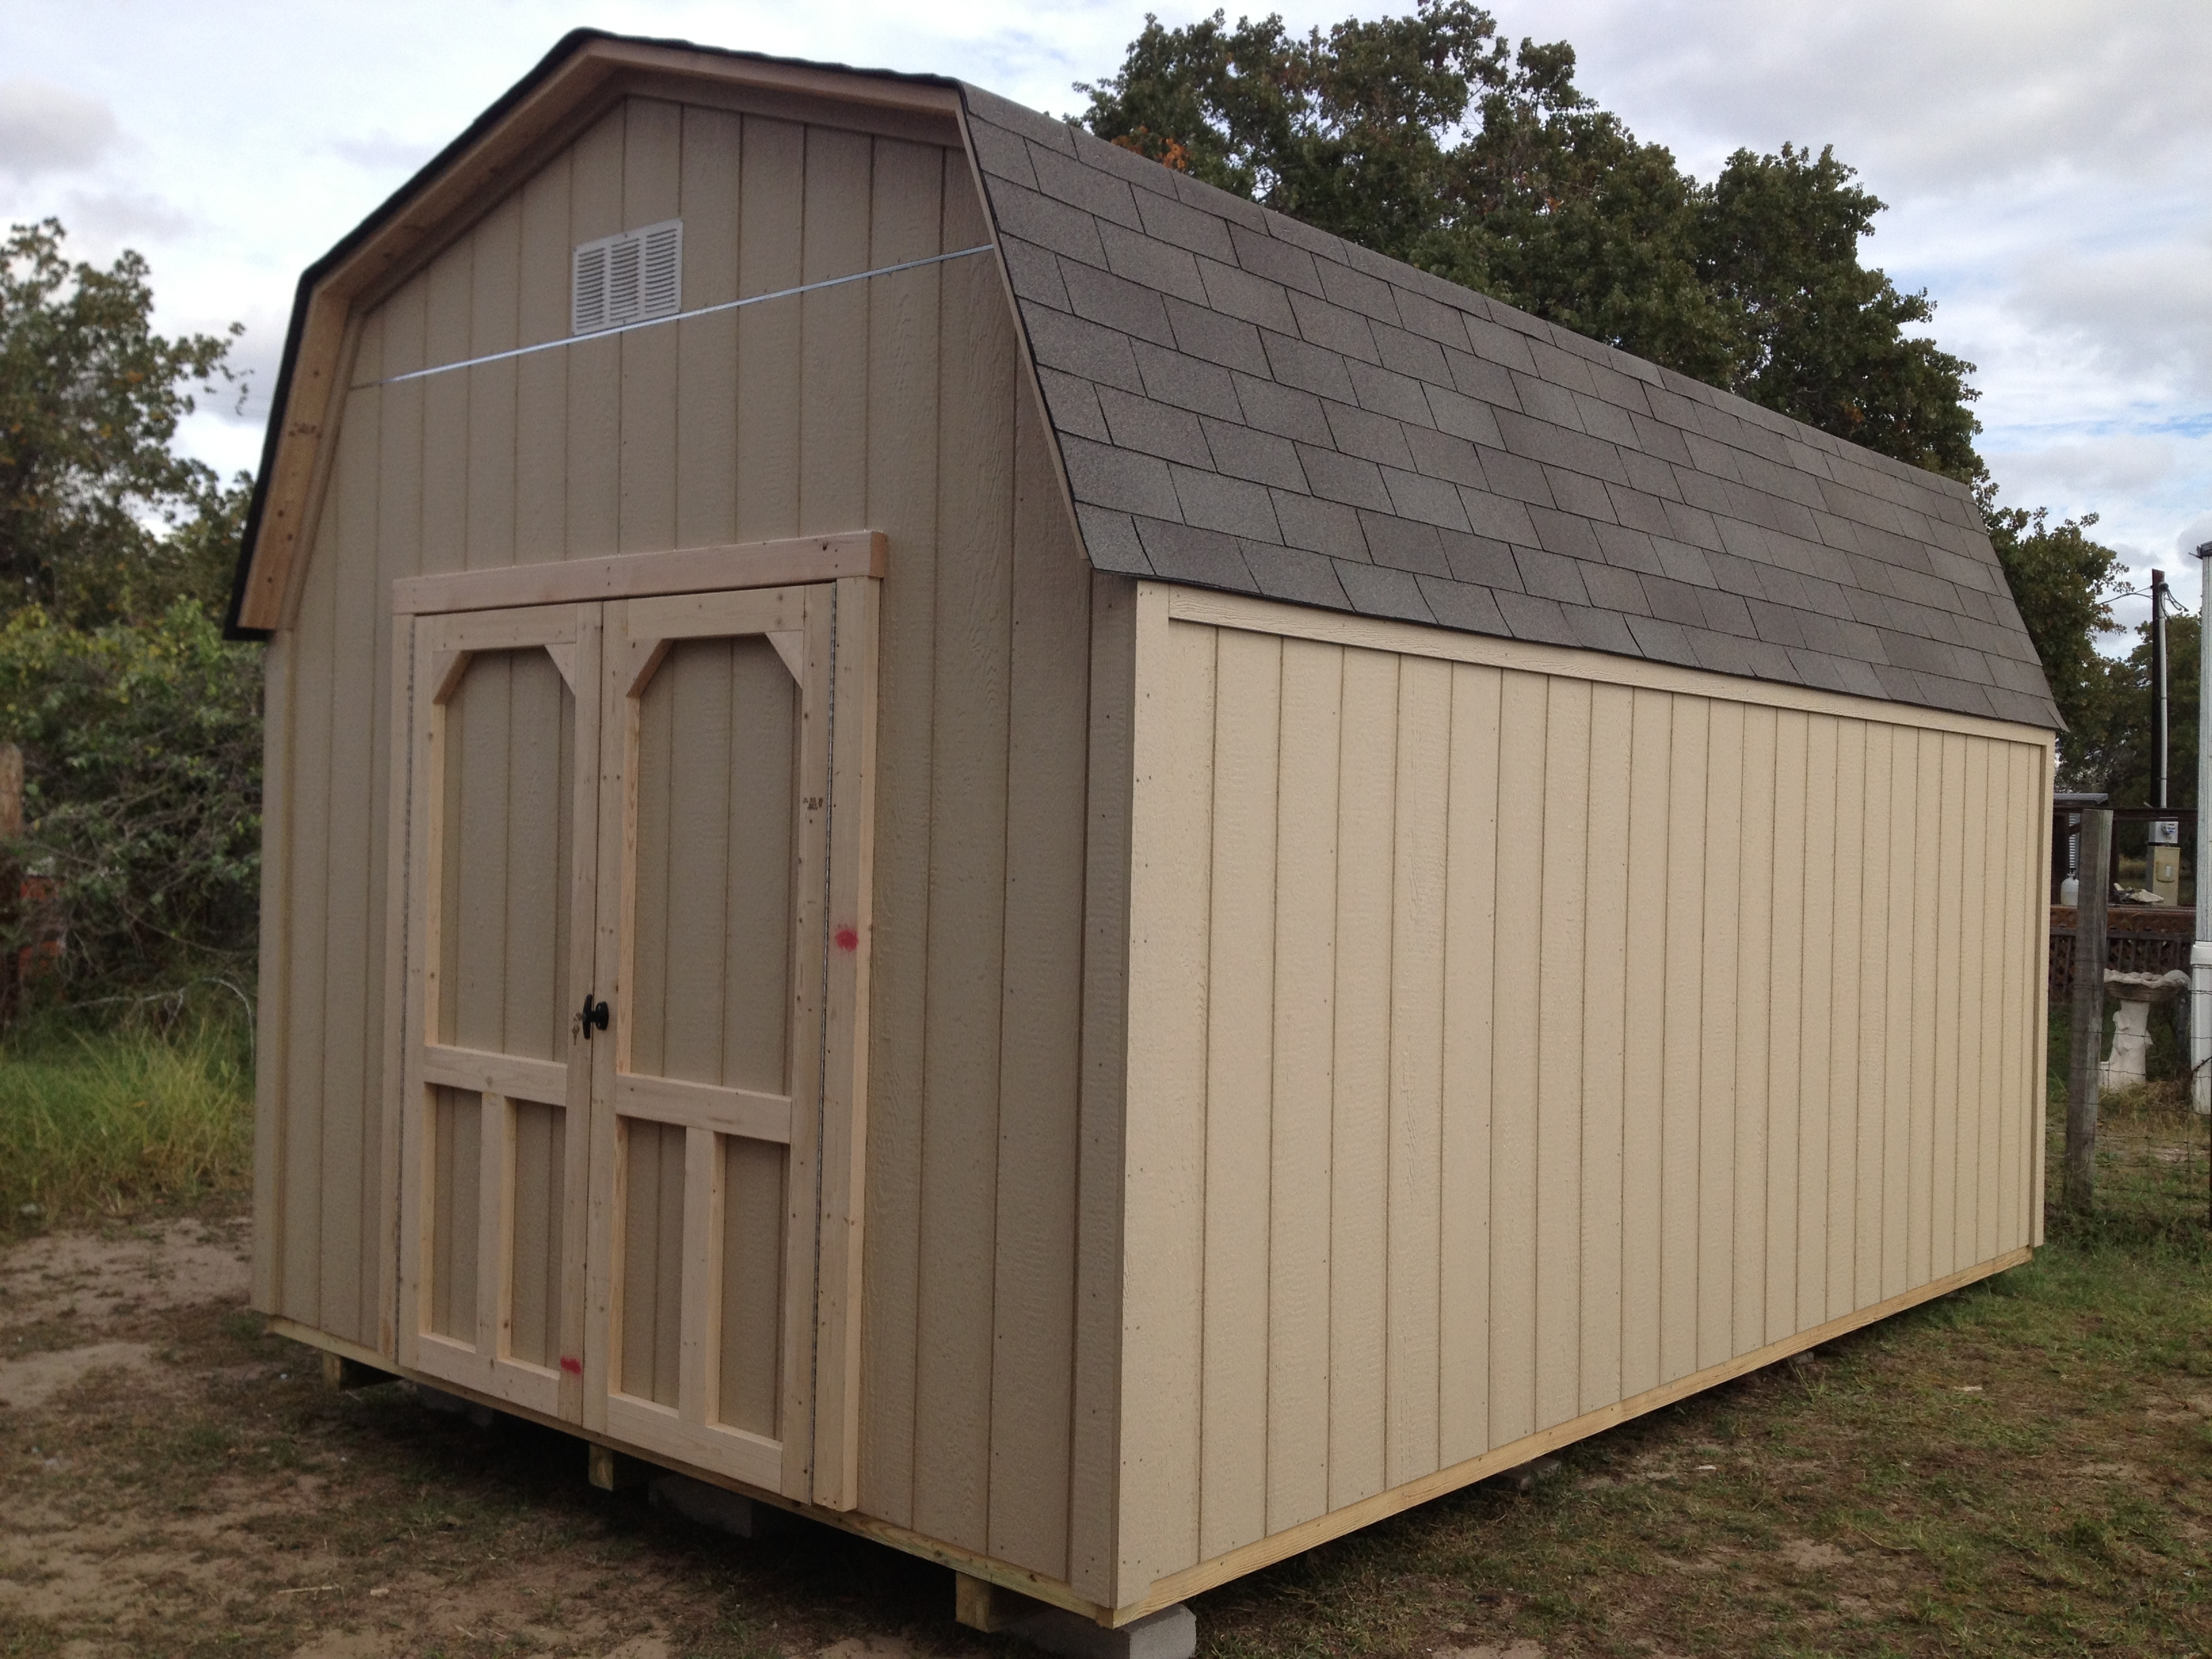 Backyard barns wood storage sheds san antonio texas for Sheds storage buildings